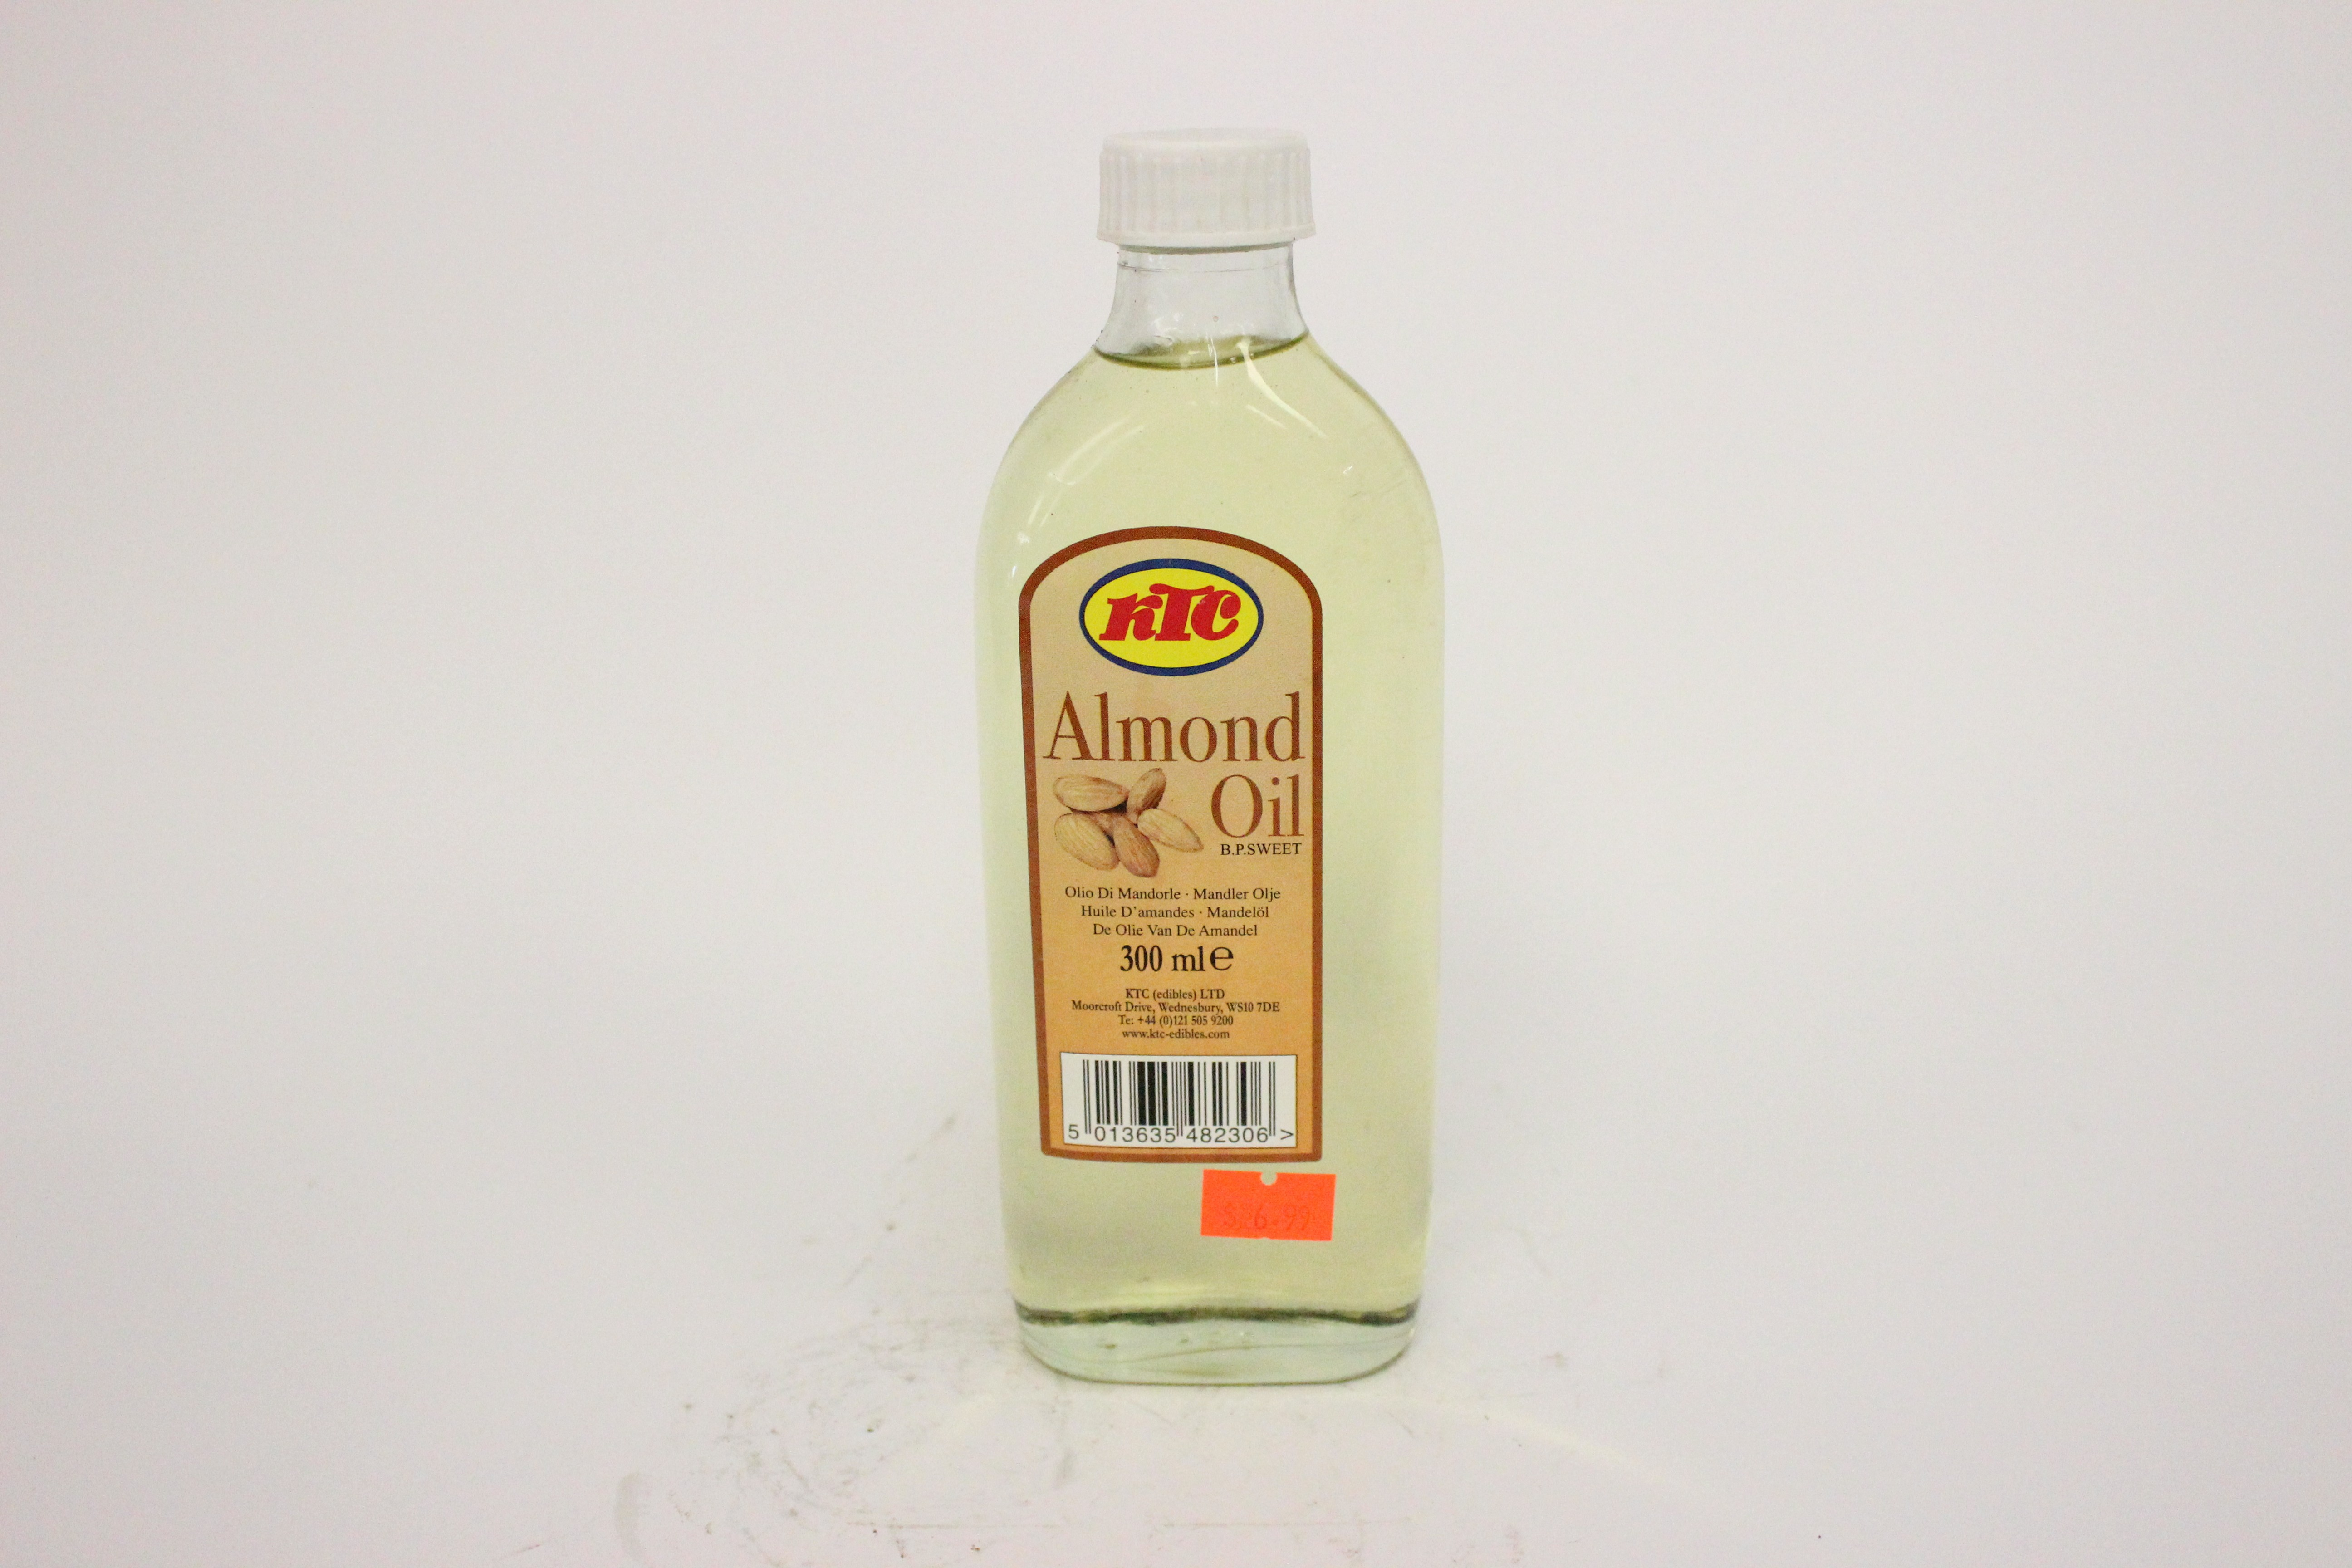 KTC Almond Oil 300 ml